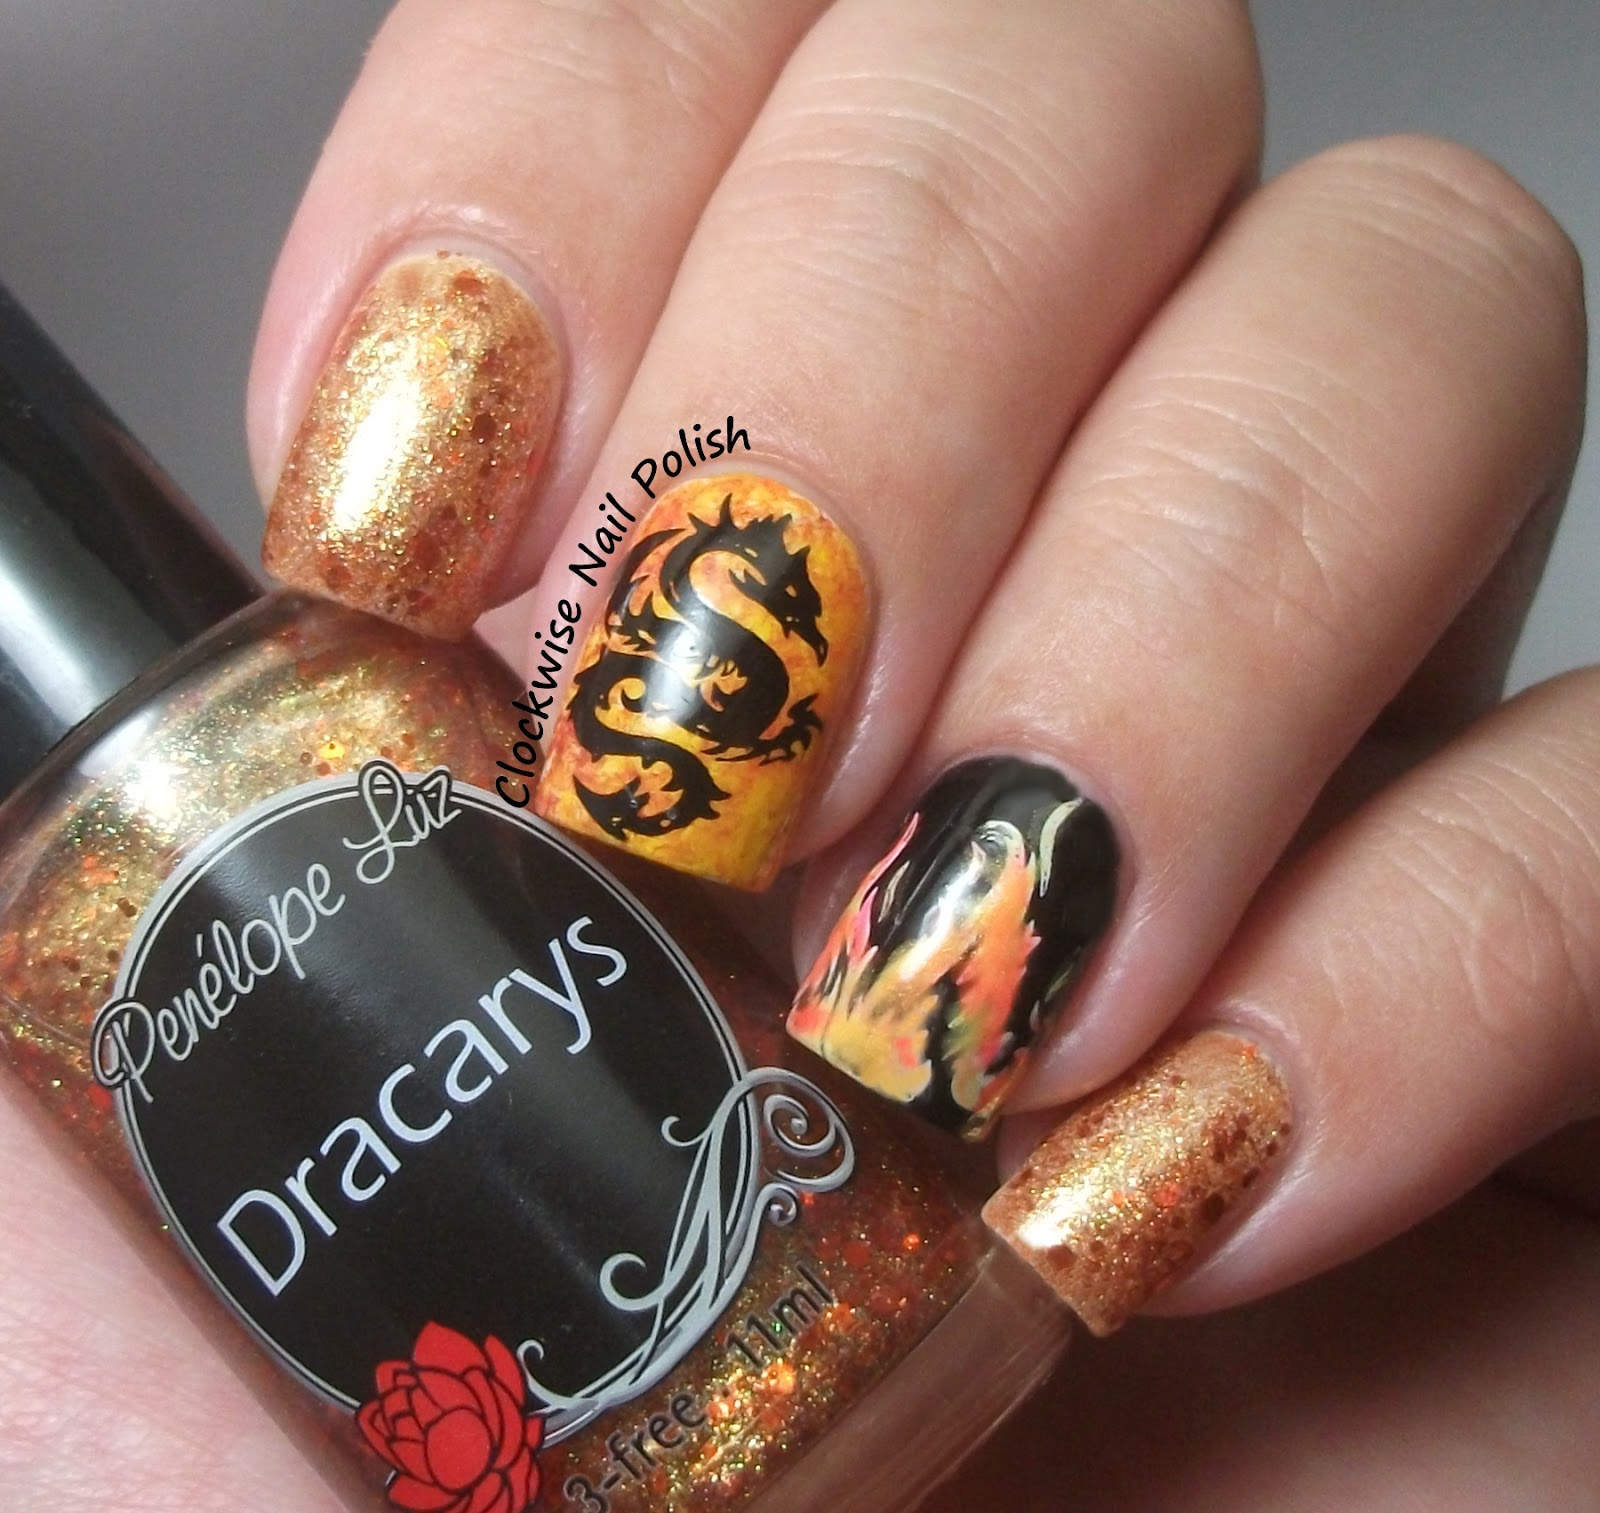 The Clockwise Nail Polish: Penélope Luz Dracarys & Fire and Dragon ...